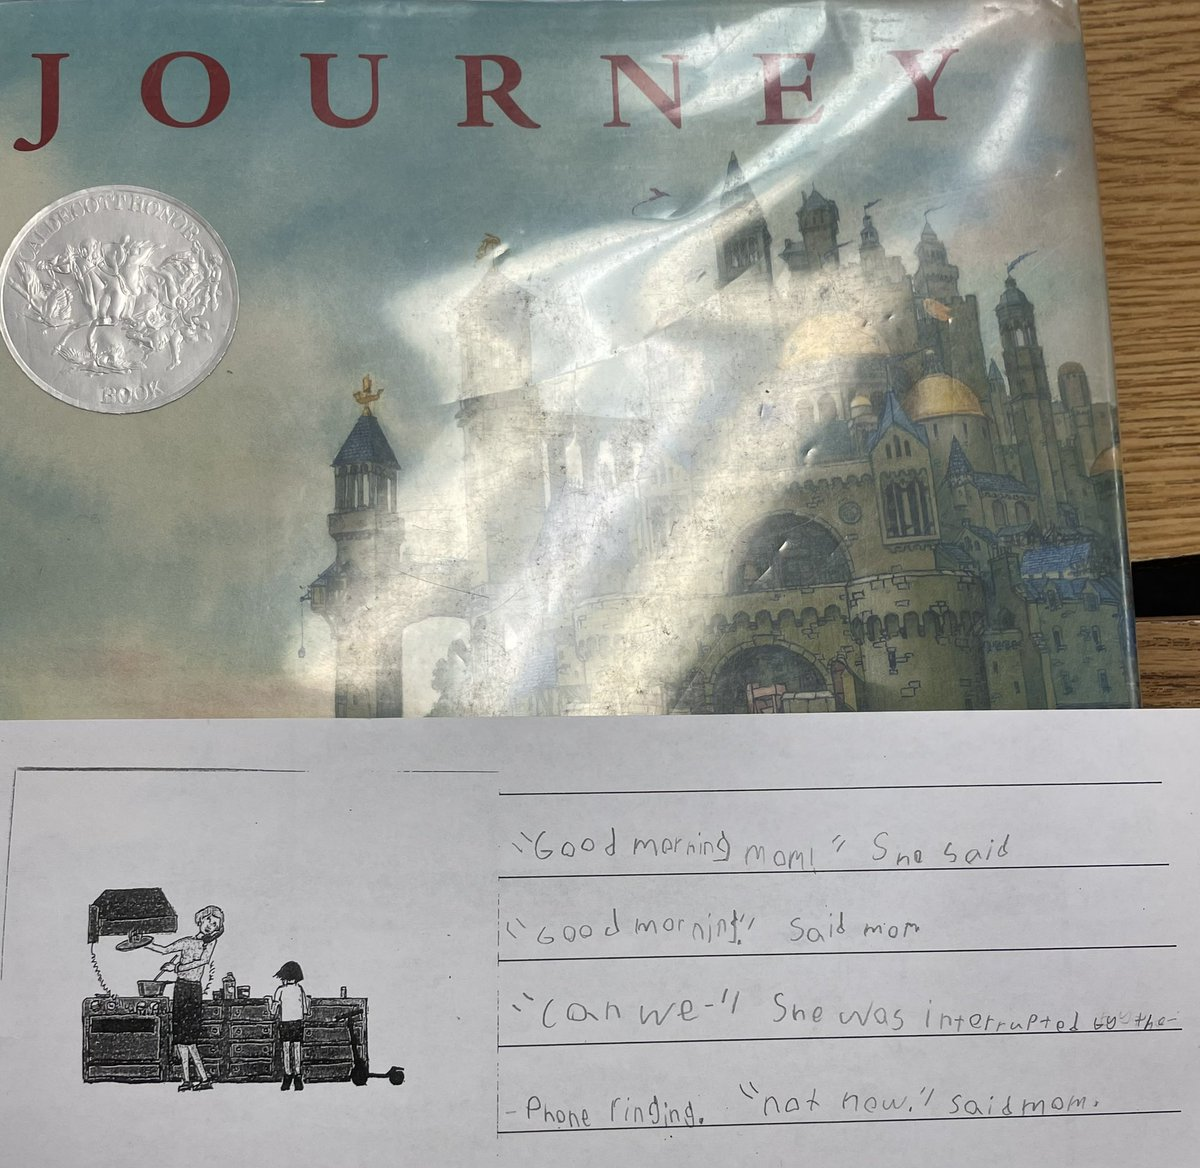 Students imagined and wrote text for the wordless picture book Journey <a target='_blank' href='http://twitter.com/APSGifted'>@APSGifted</a> <a target='_blank' href='https://t.co/dhIN7wFsjk'>https://t.co/dhIN7wFsjk</a>